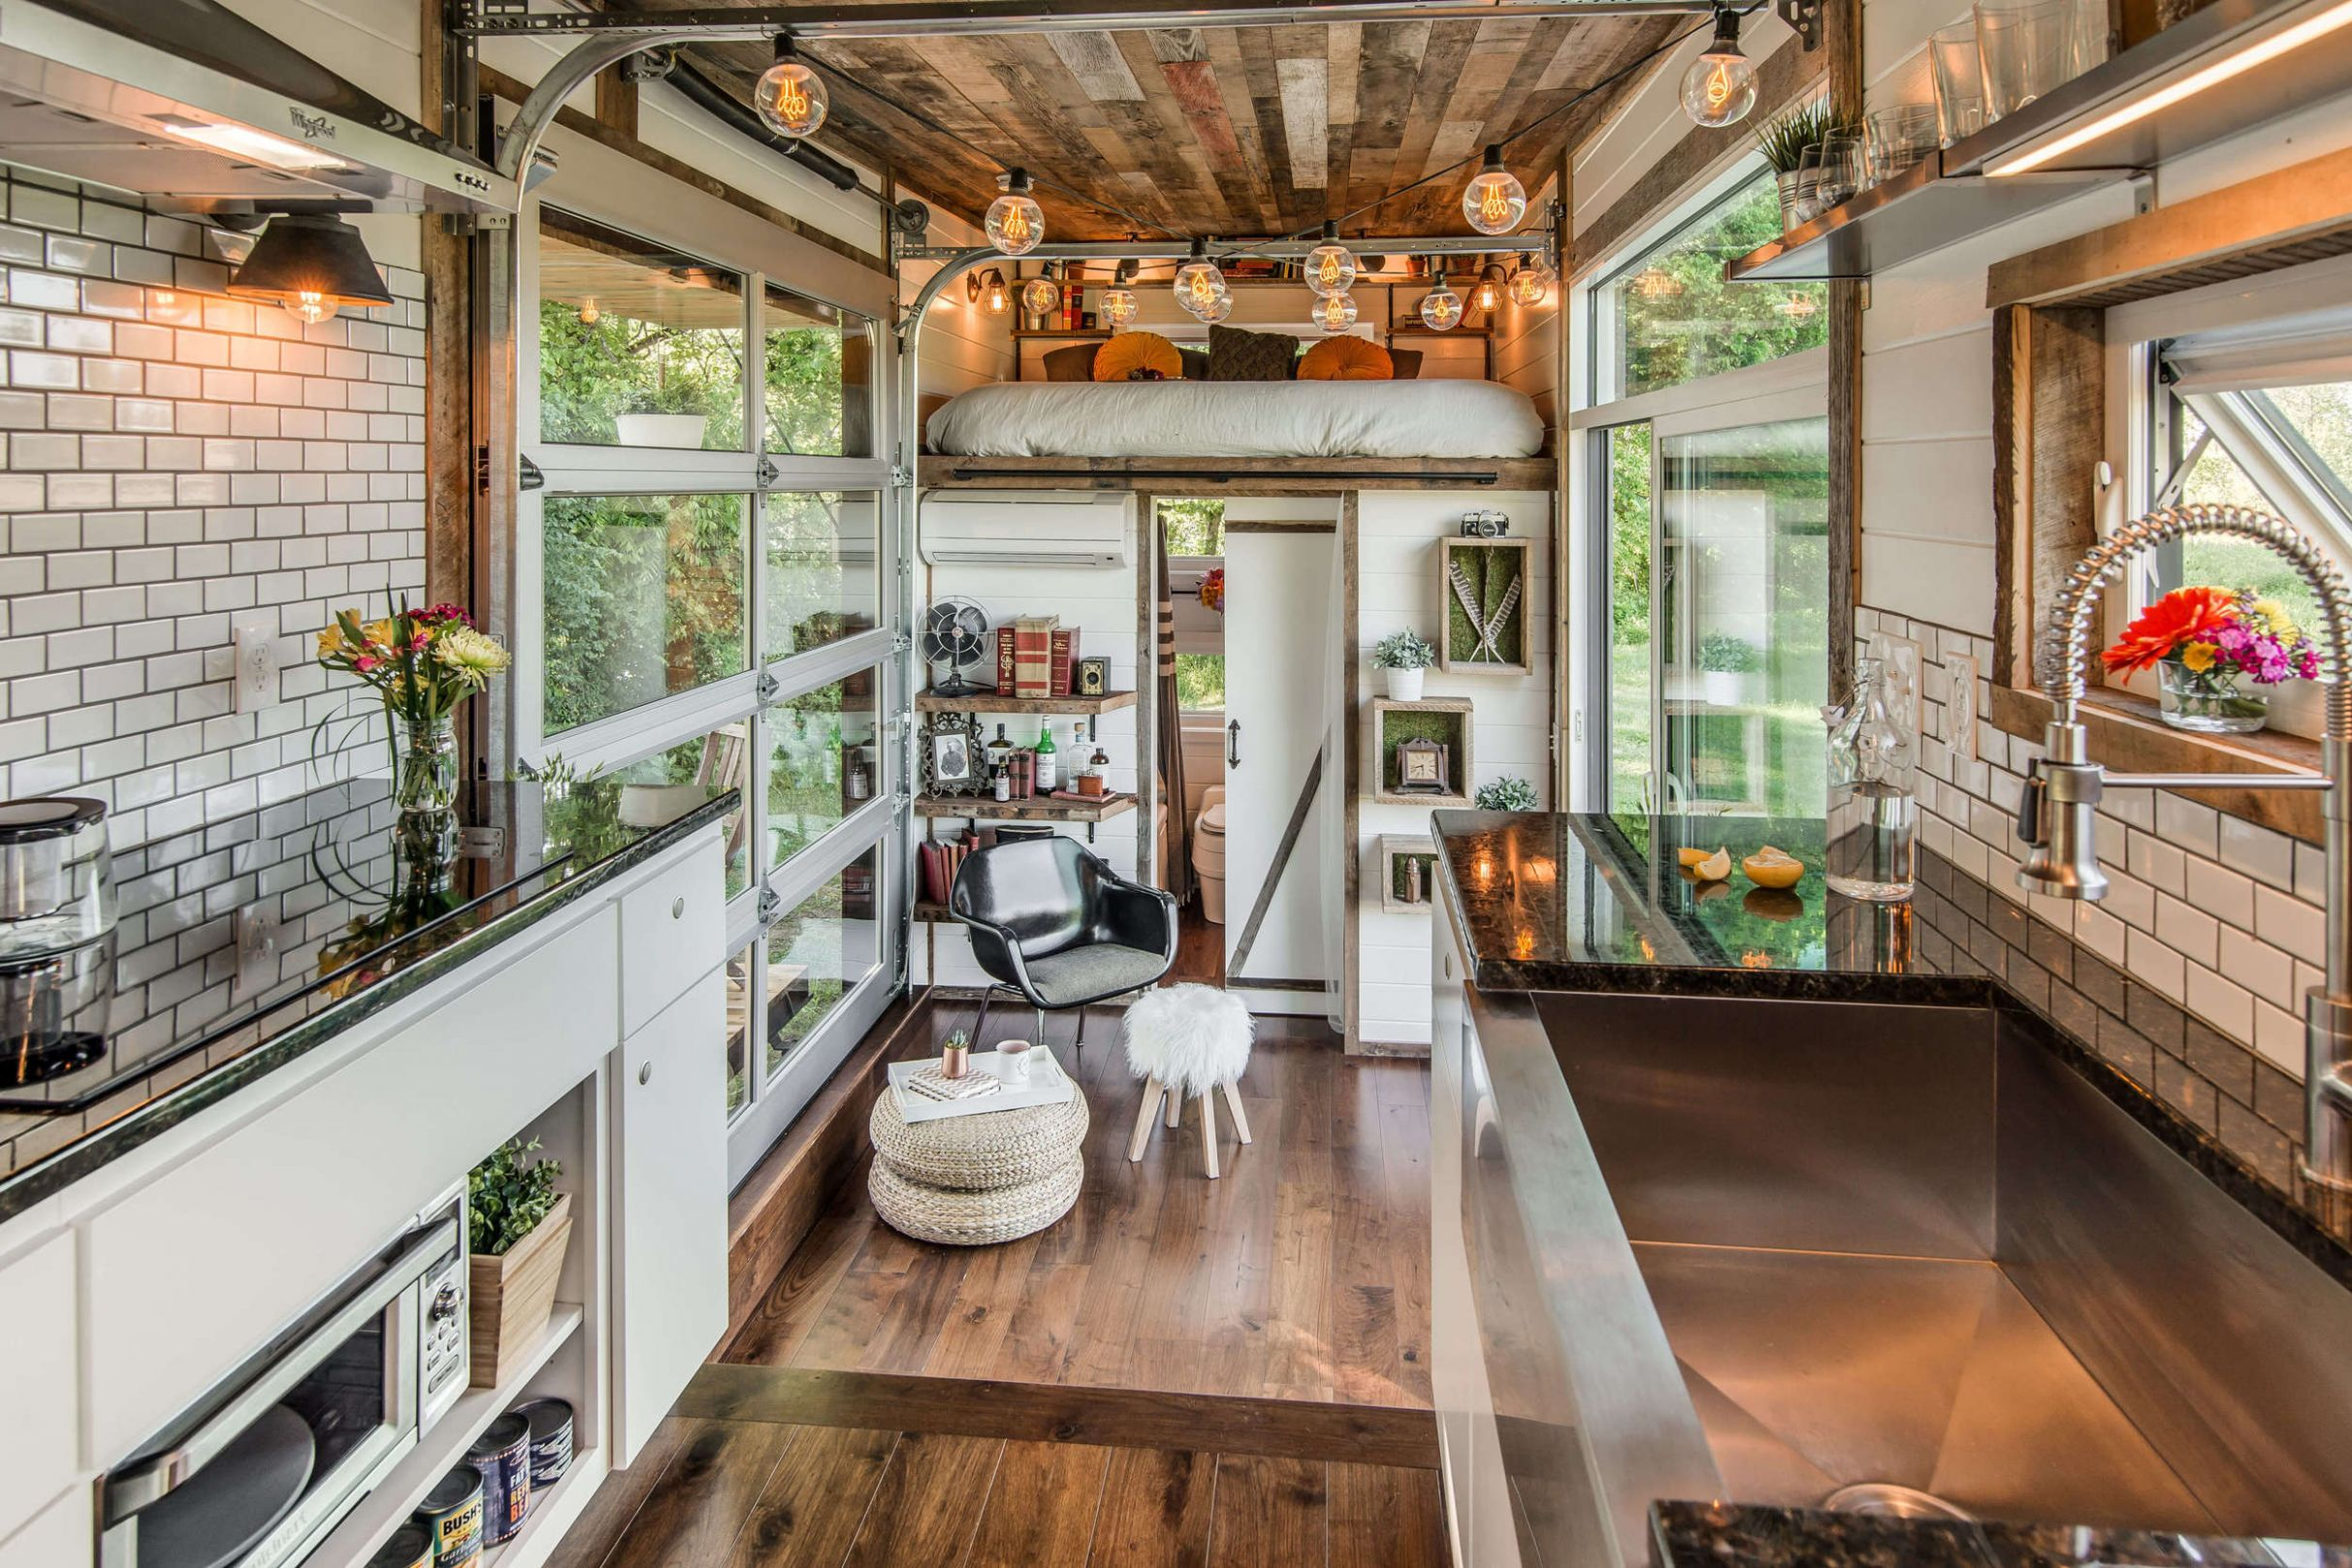 Modern Tiny Home [8x8] : RoomPorn - tiny house reddit